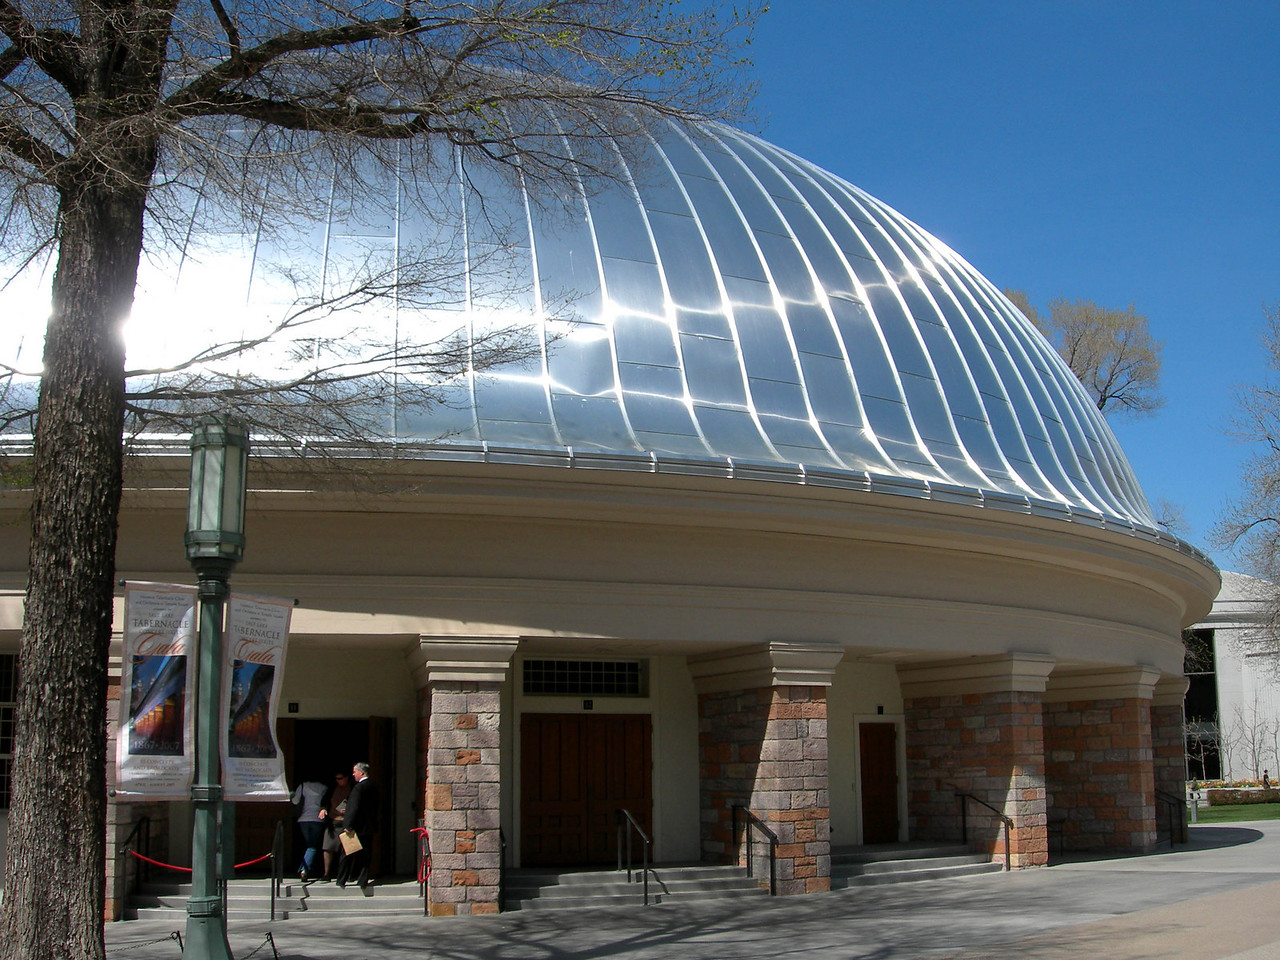 4/3/07 – After our second day of delivering magazines in Salt Lake City we stopped quickly to check out the remodeled Tabernacle on Temple Square. I really wanted to see the new tin roof.